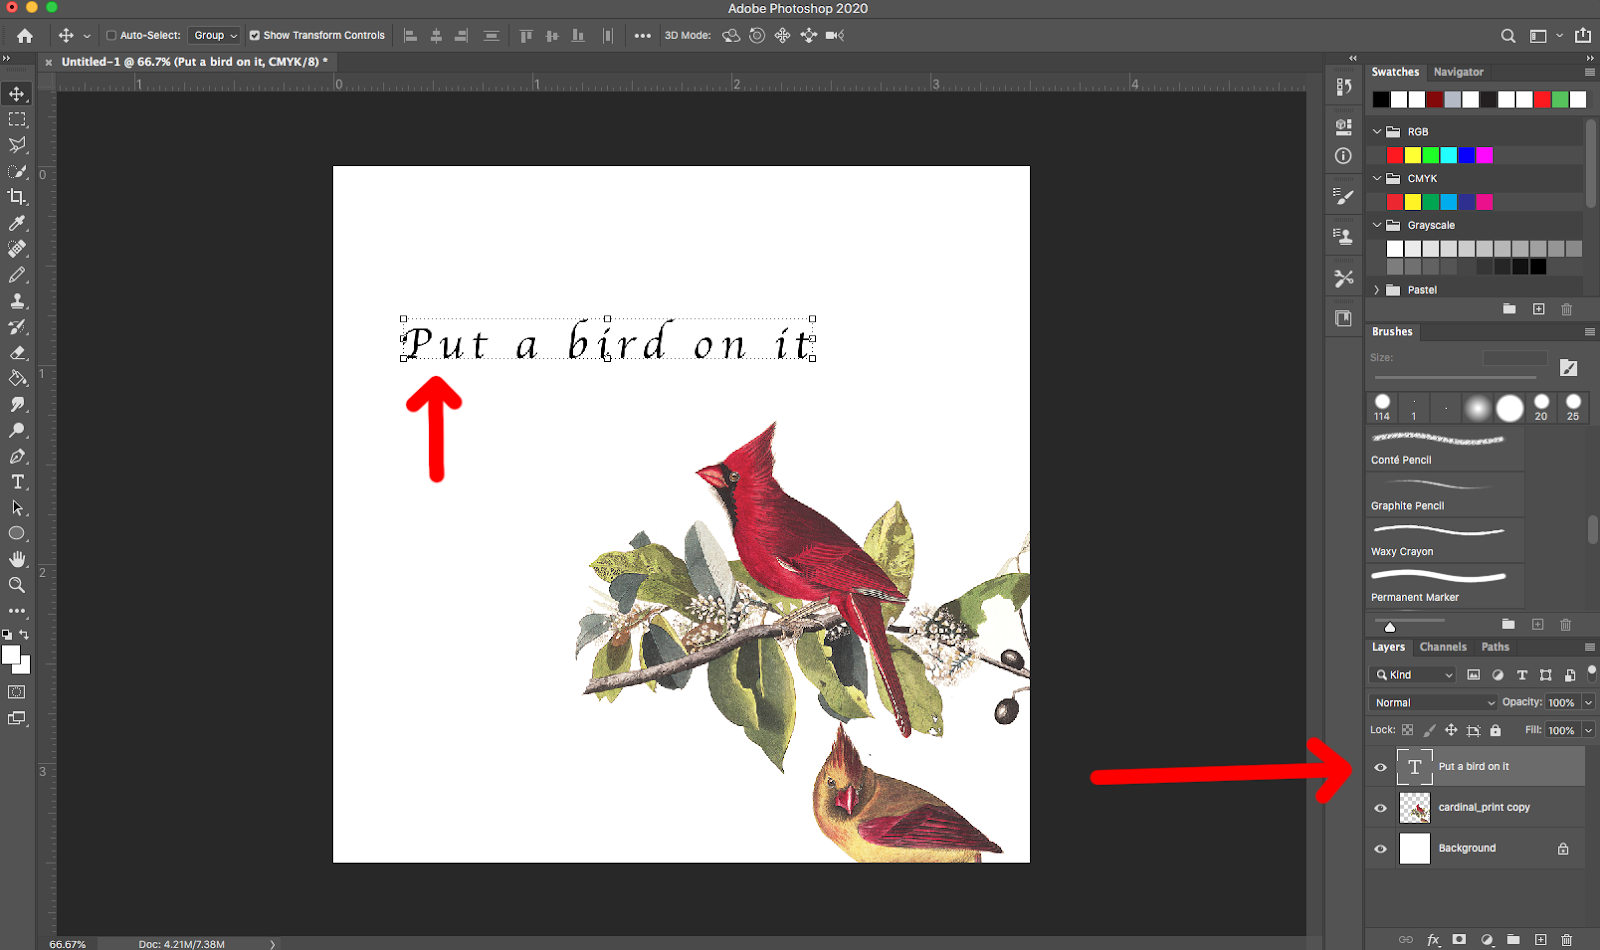 Image showing how to select text layers in Adobe Photoshop.